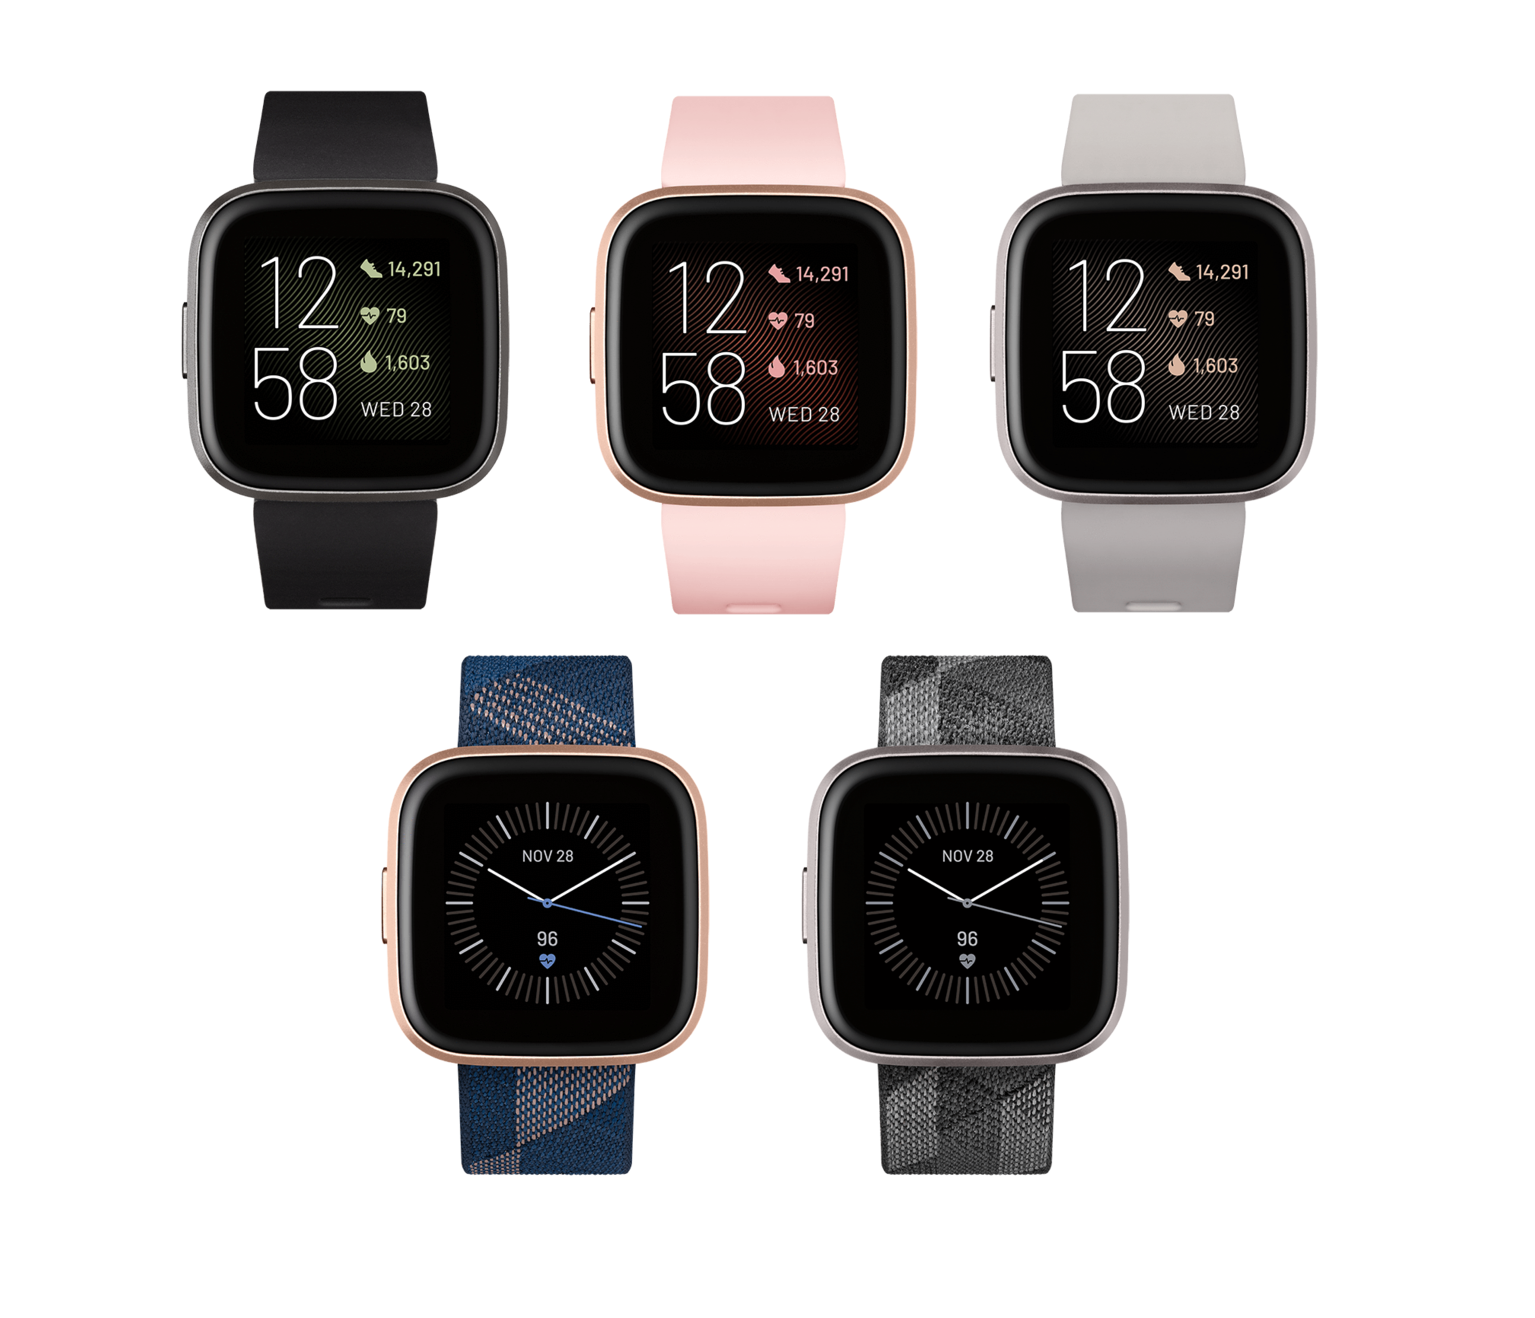 Fitbit Versa 2 Health and Fitness Smartwatch - NEW Versa2 6